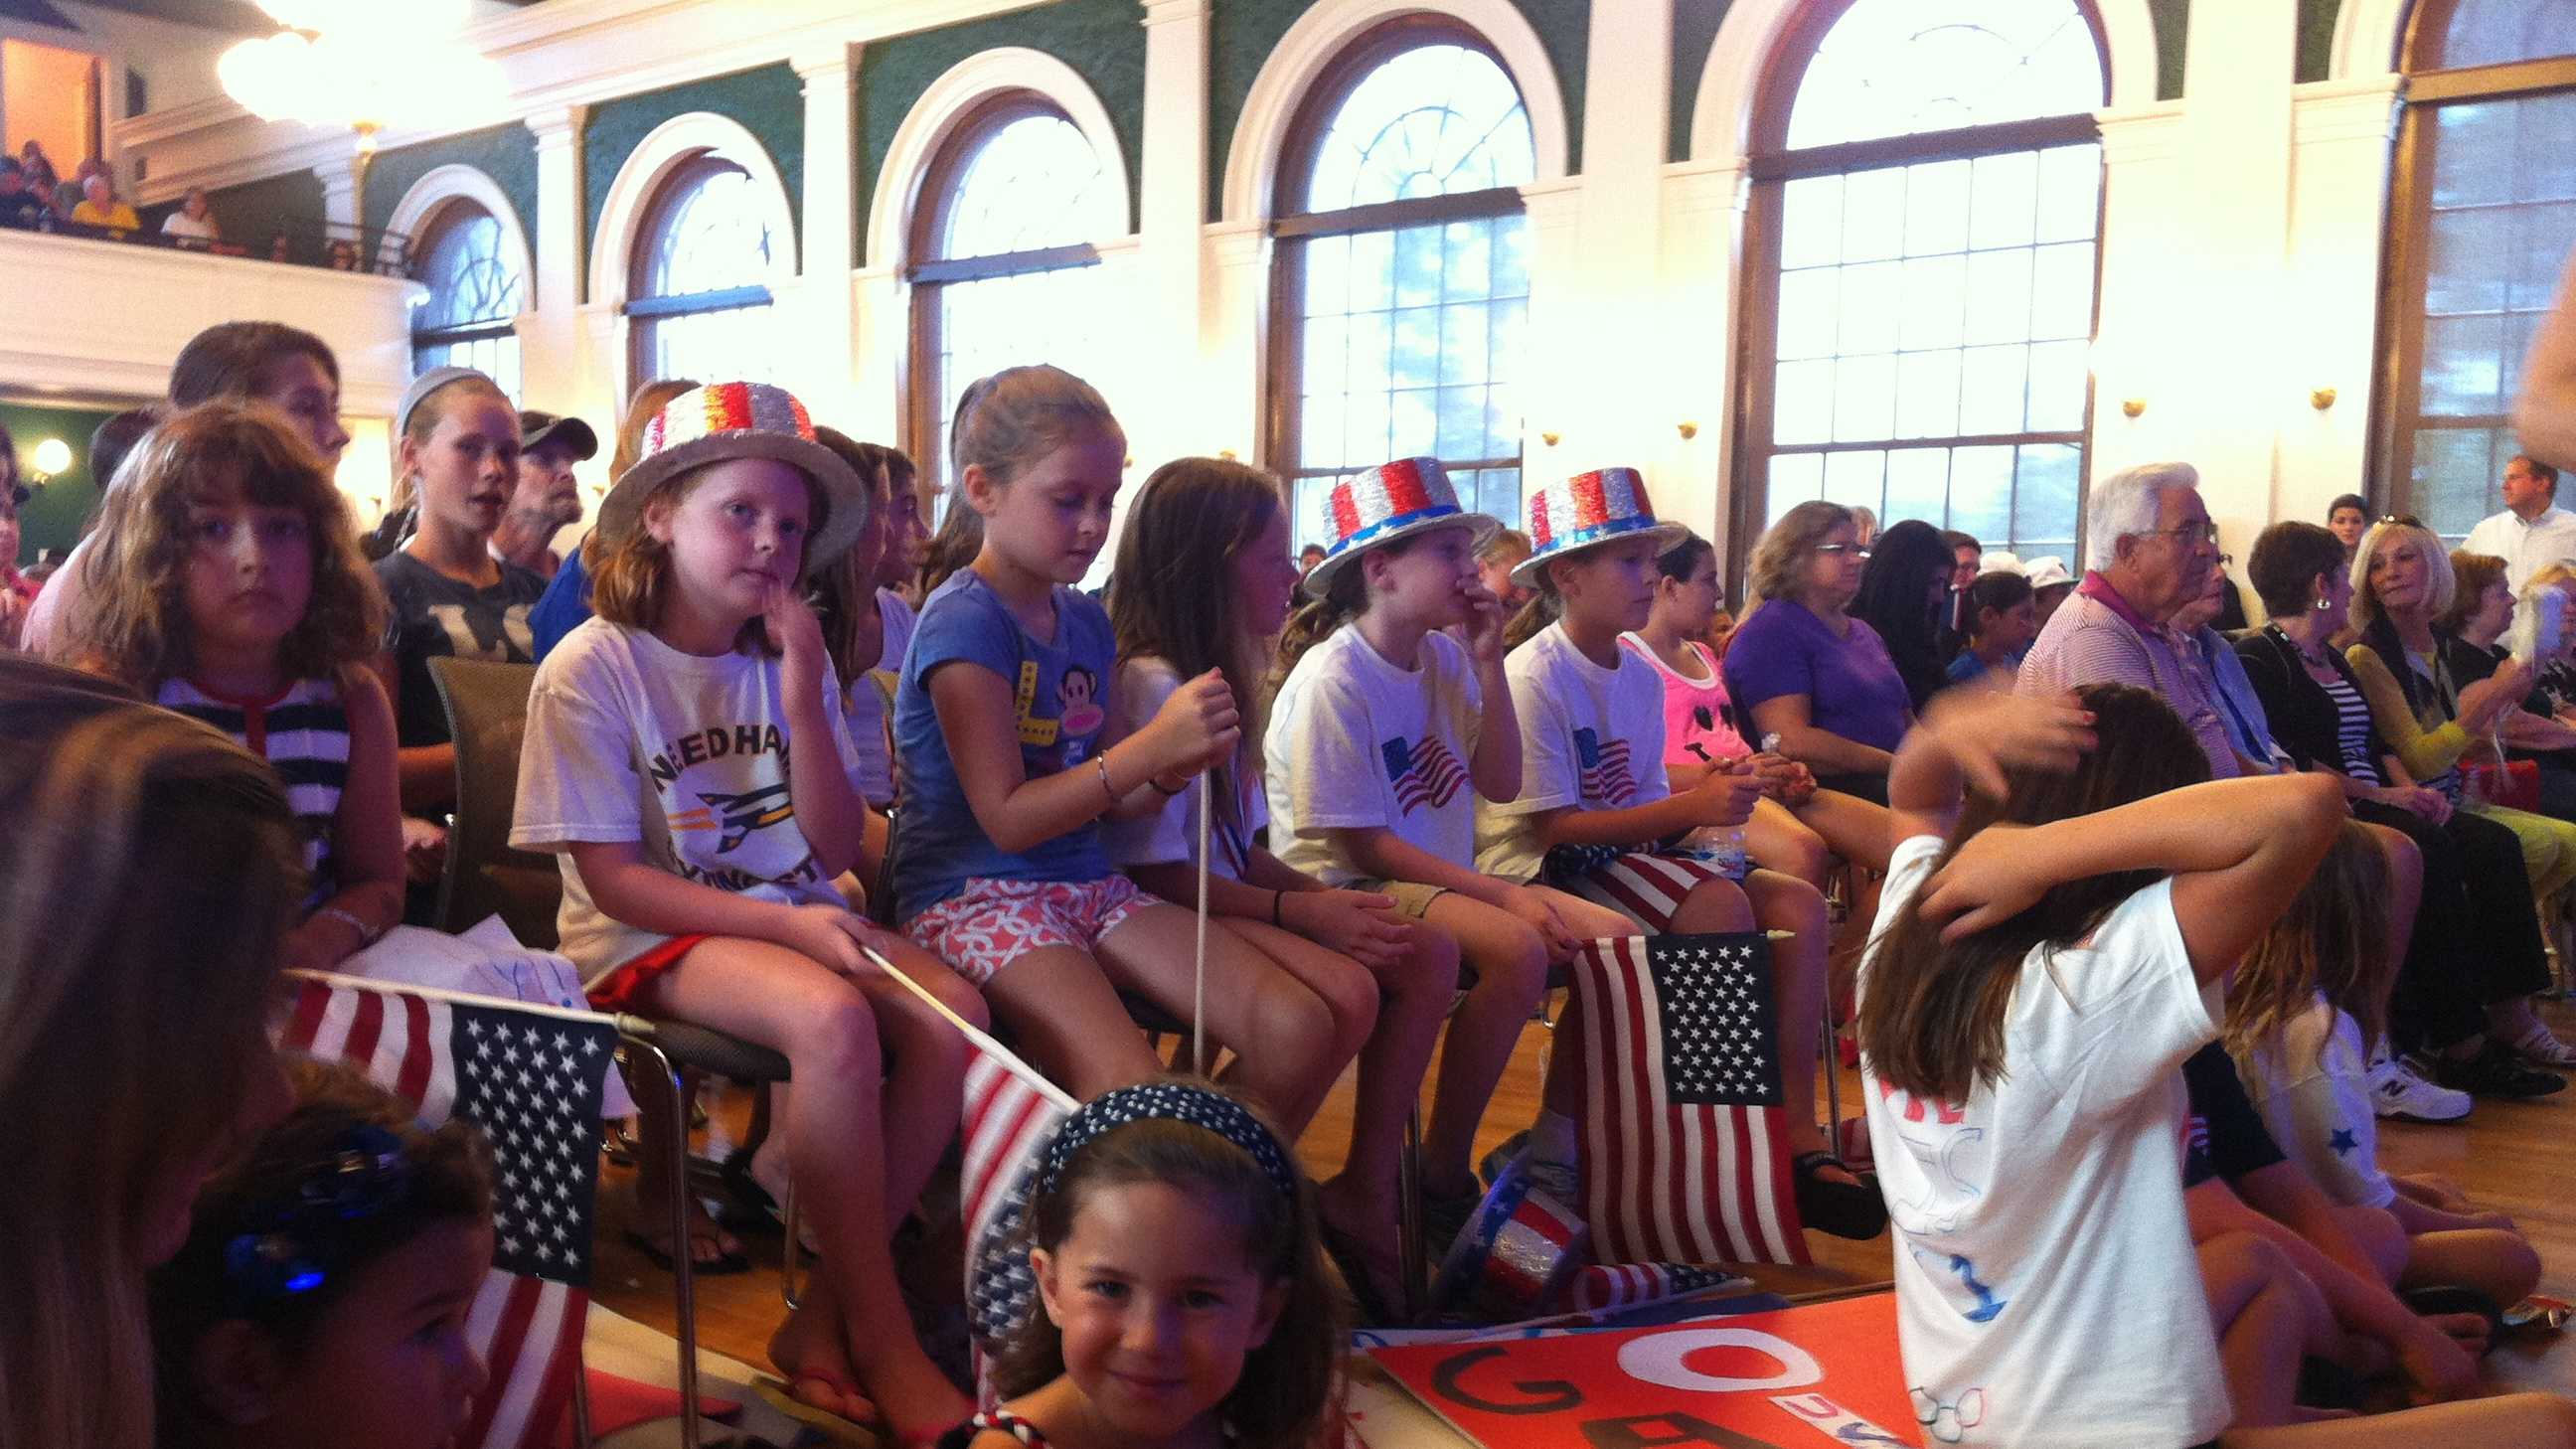 Young Needham residents watch Aly Raisman go for gold.